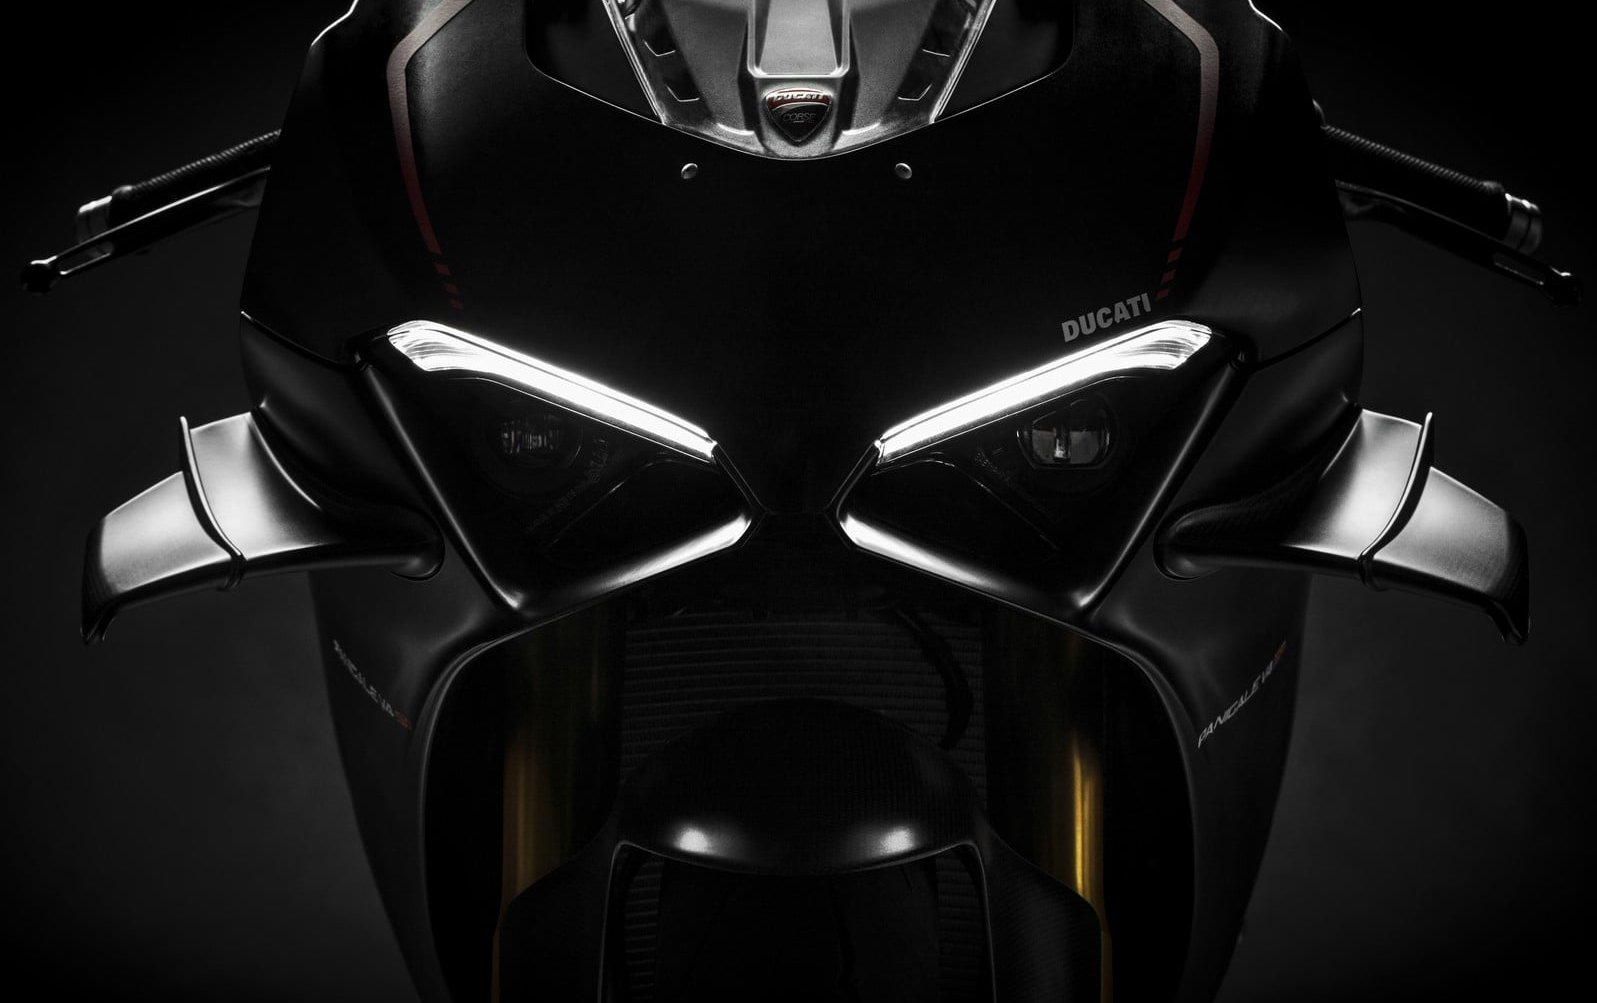 Ducati V4 Panigale - Page 21 12628210